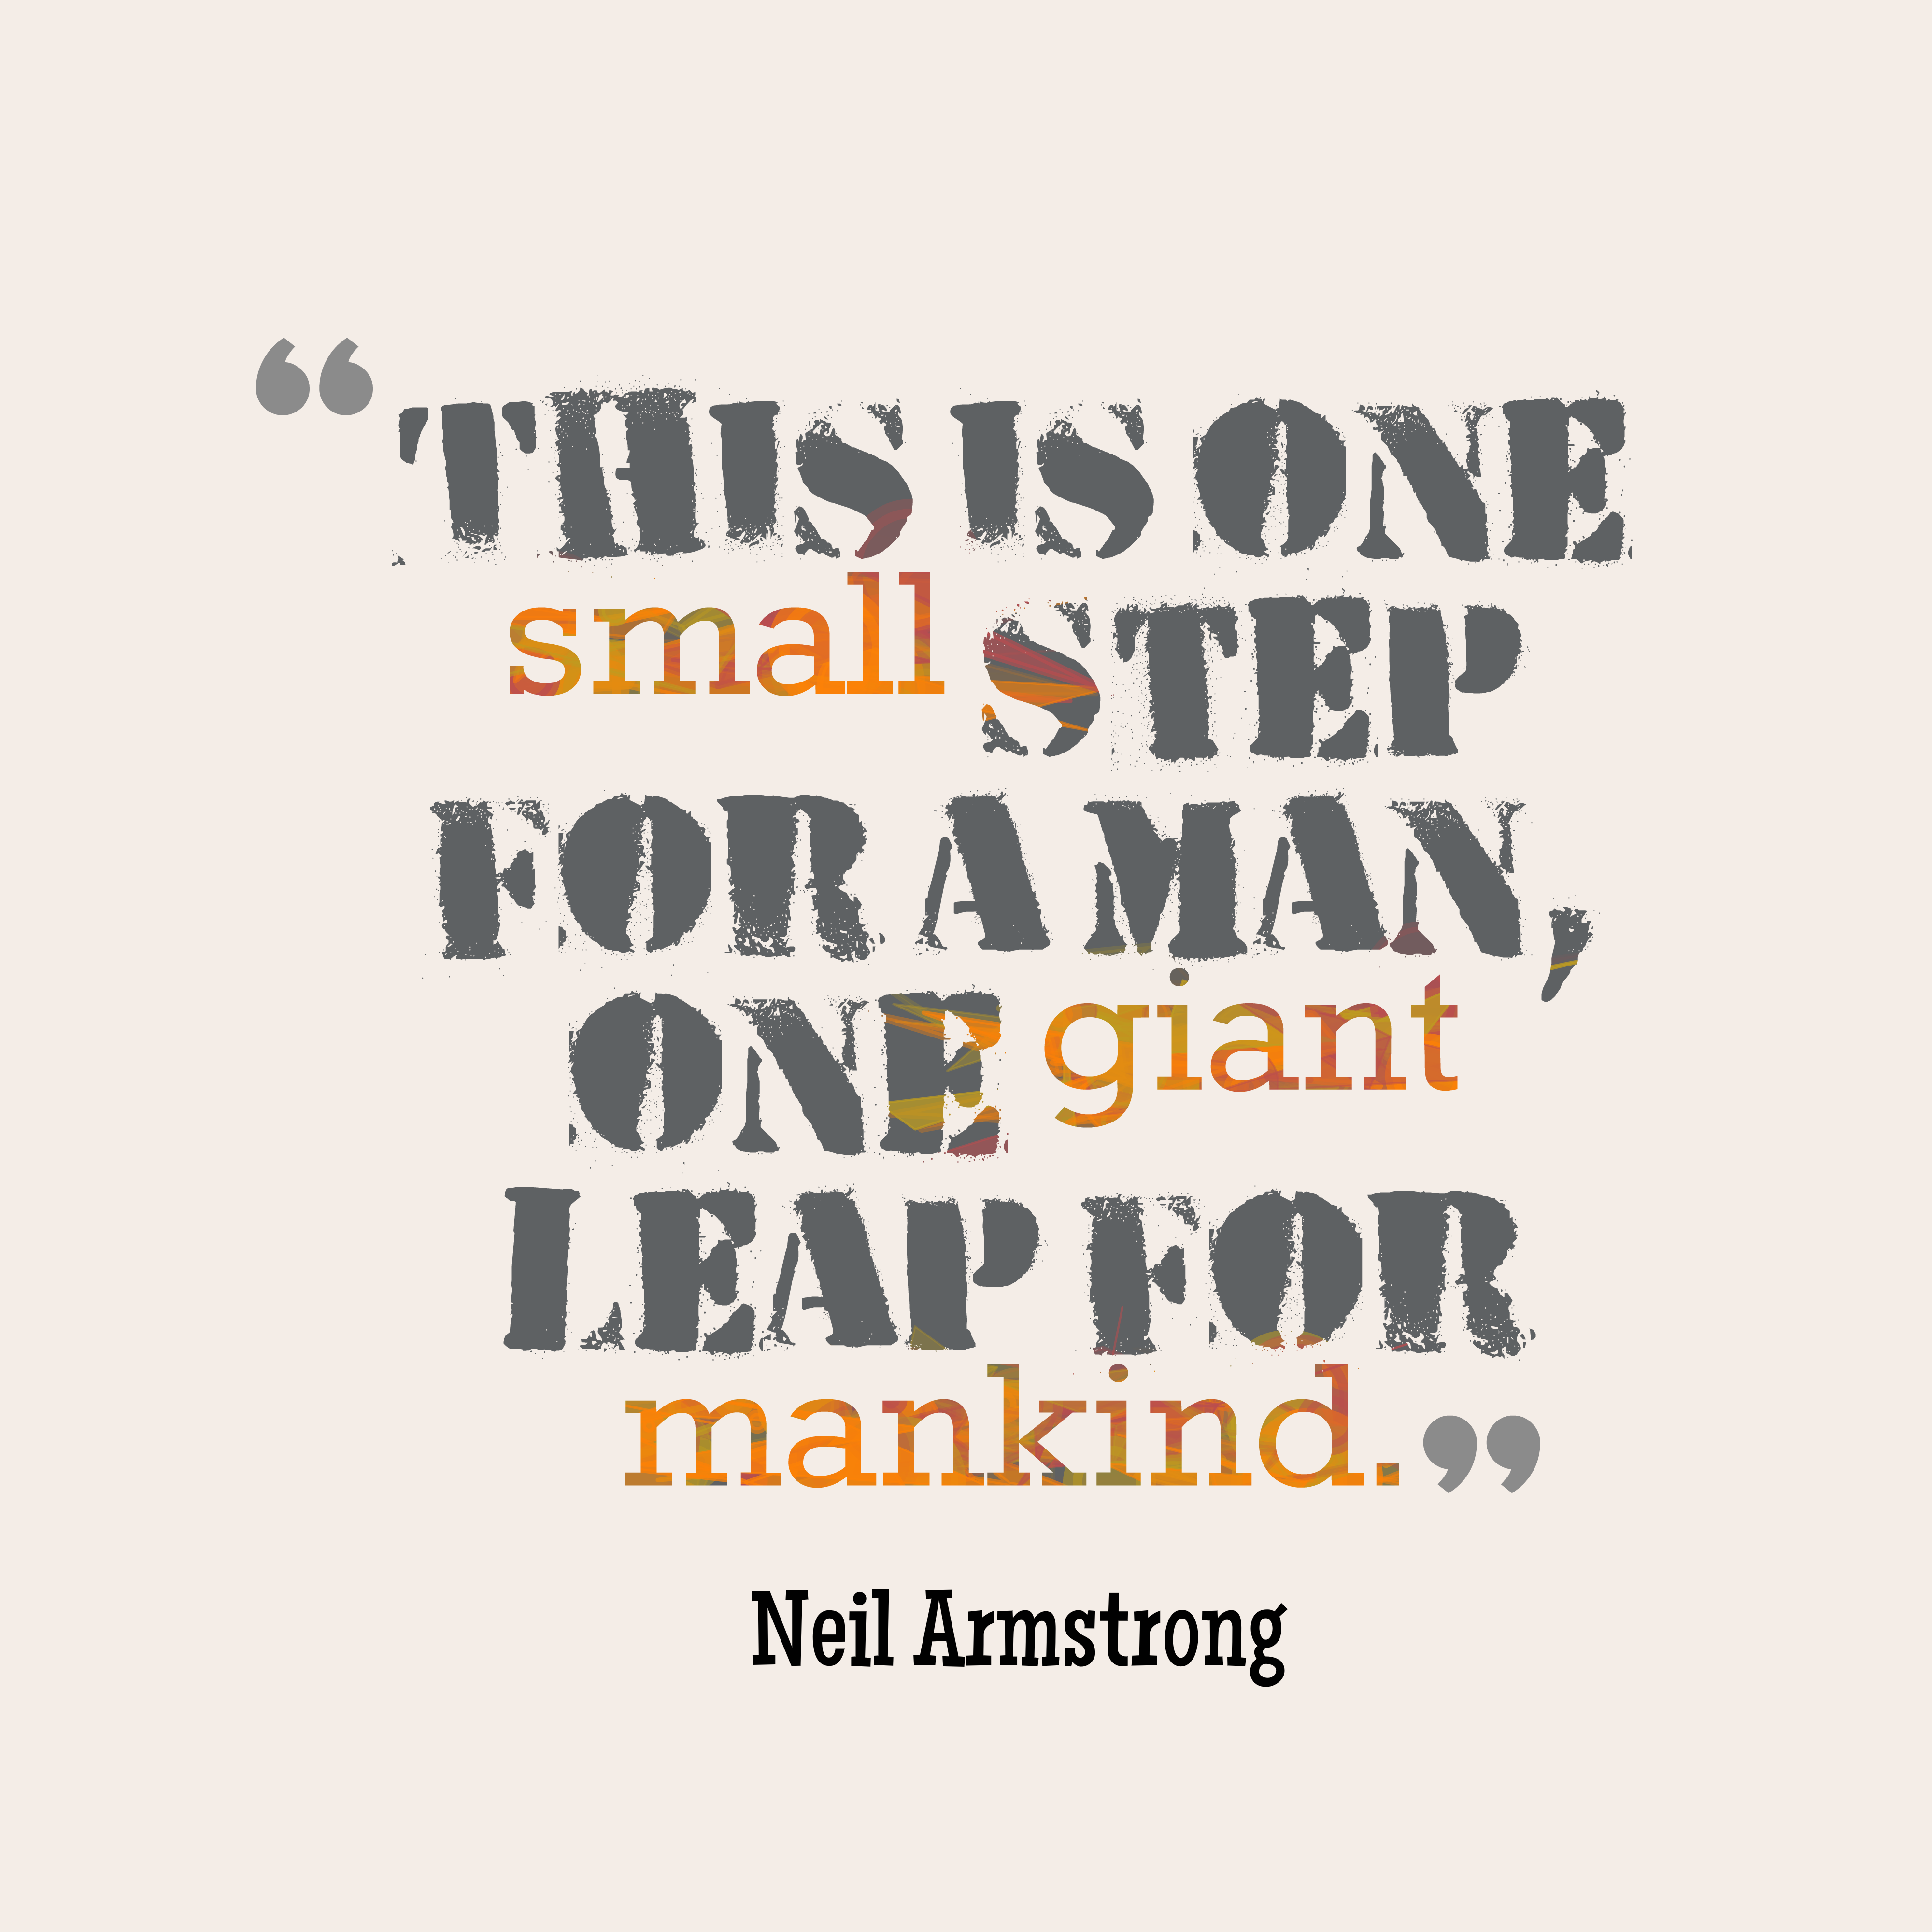 Neil Armstrong Quote One Small Step - Pics about space